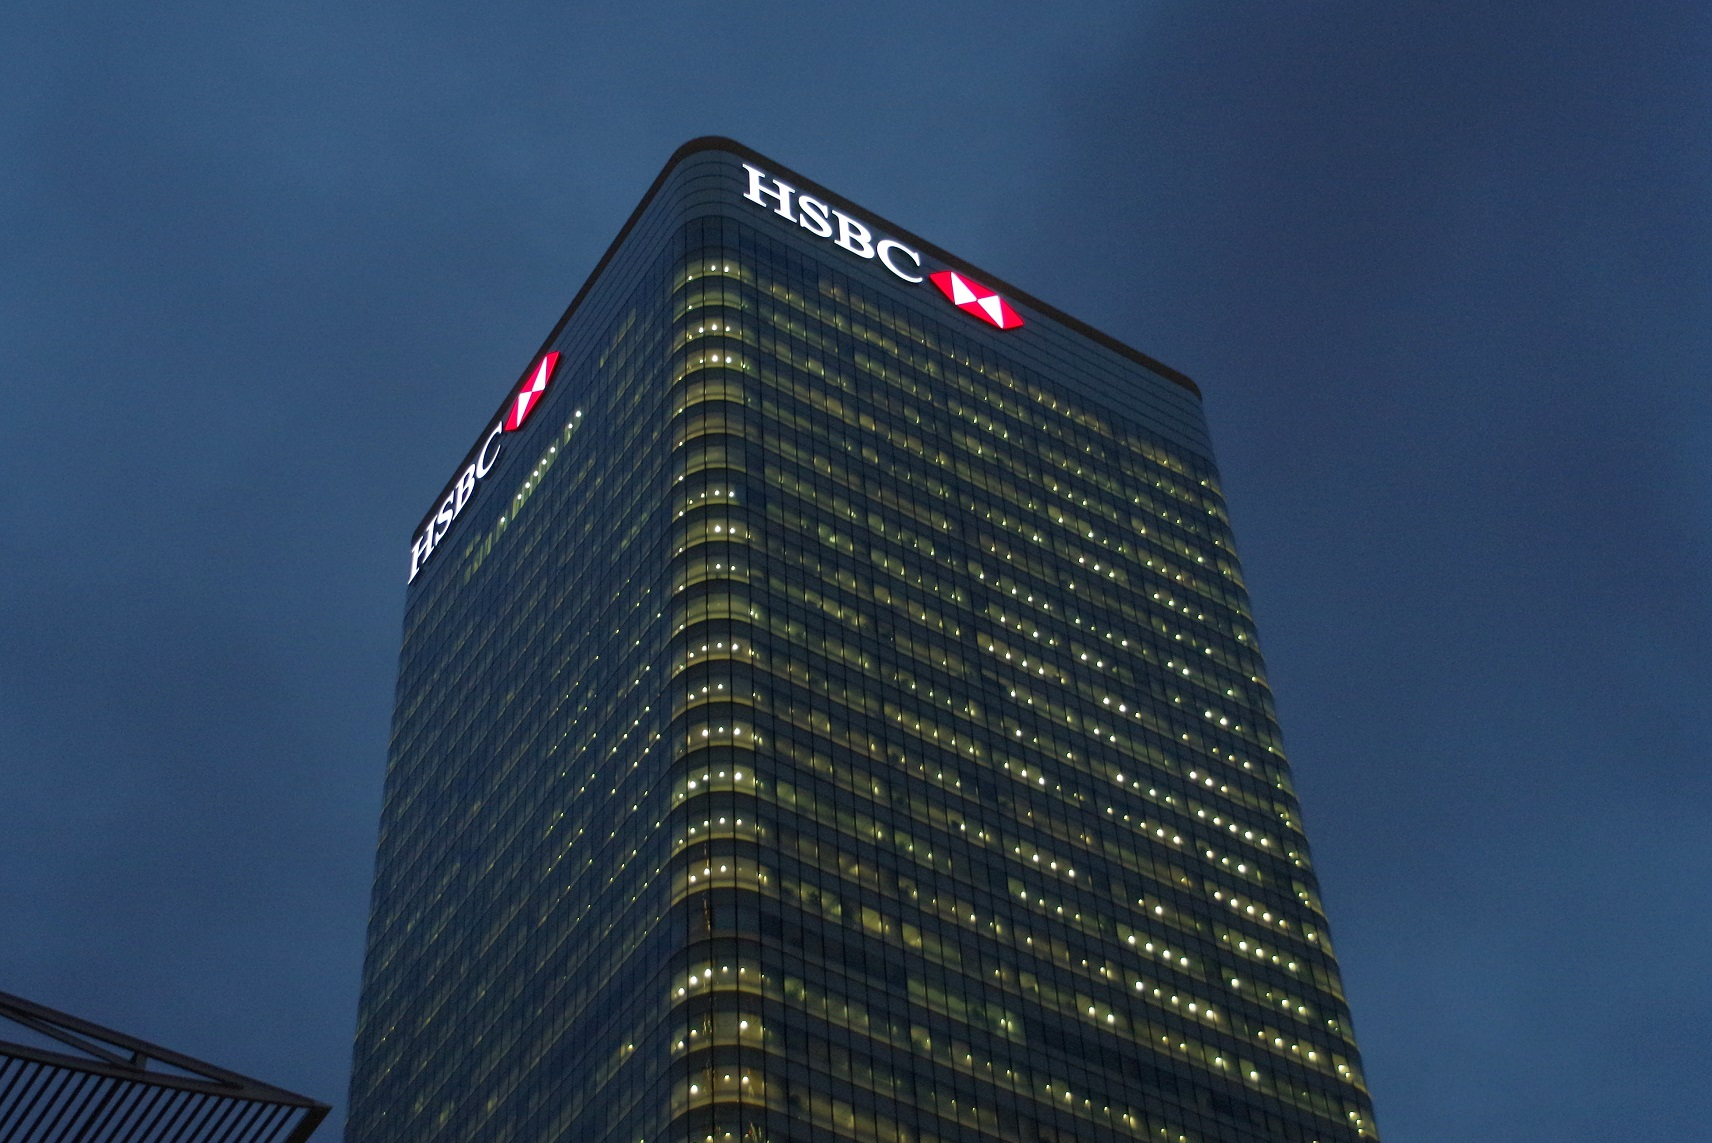 HSBC Has Settled $250 Billion Worth of Transactions Using DLTs